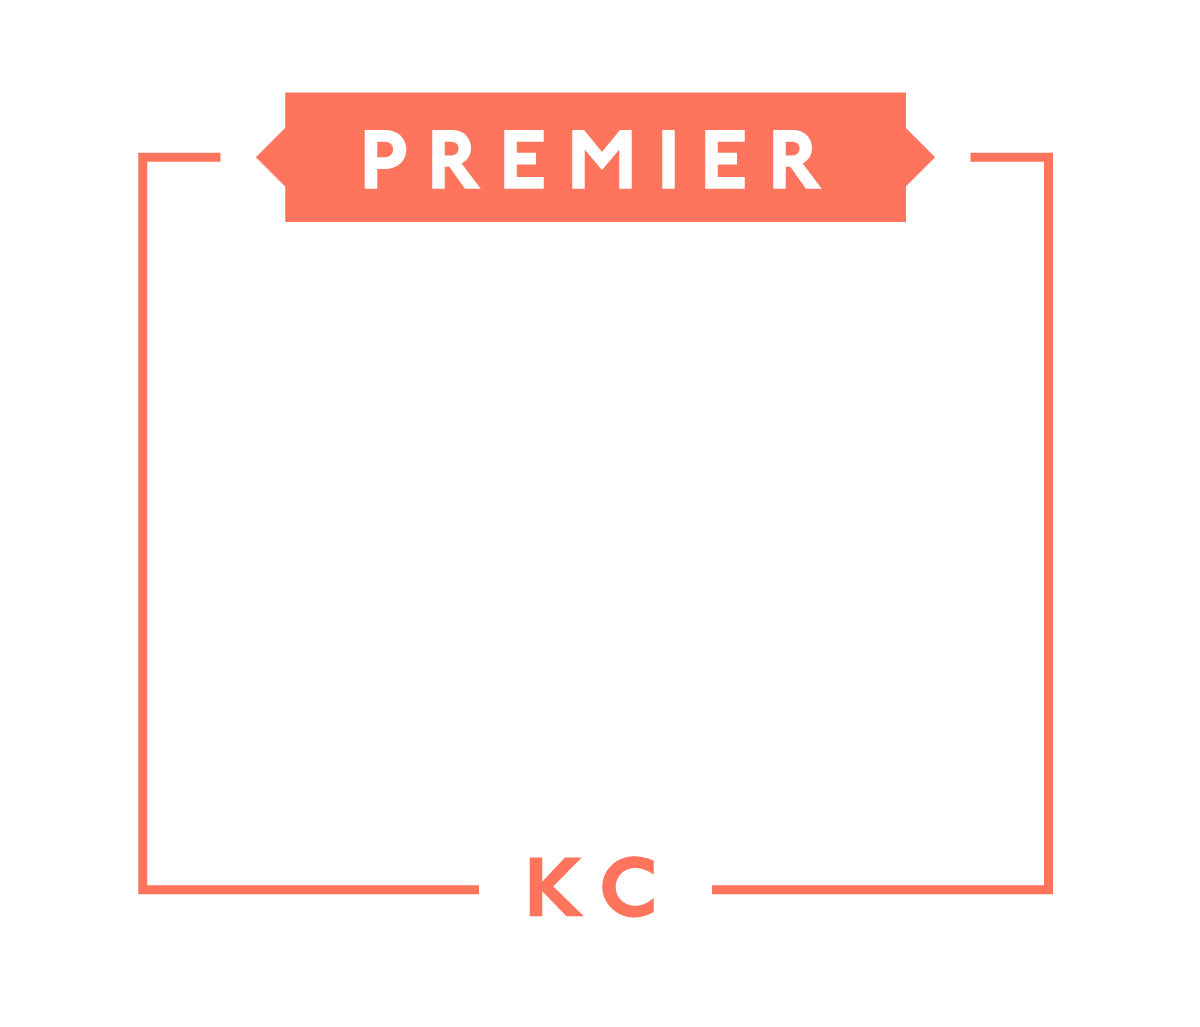 Premier Wedding Pastors KC